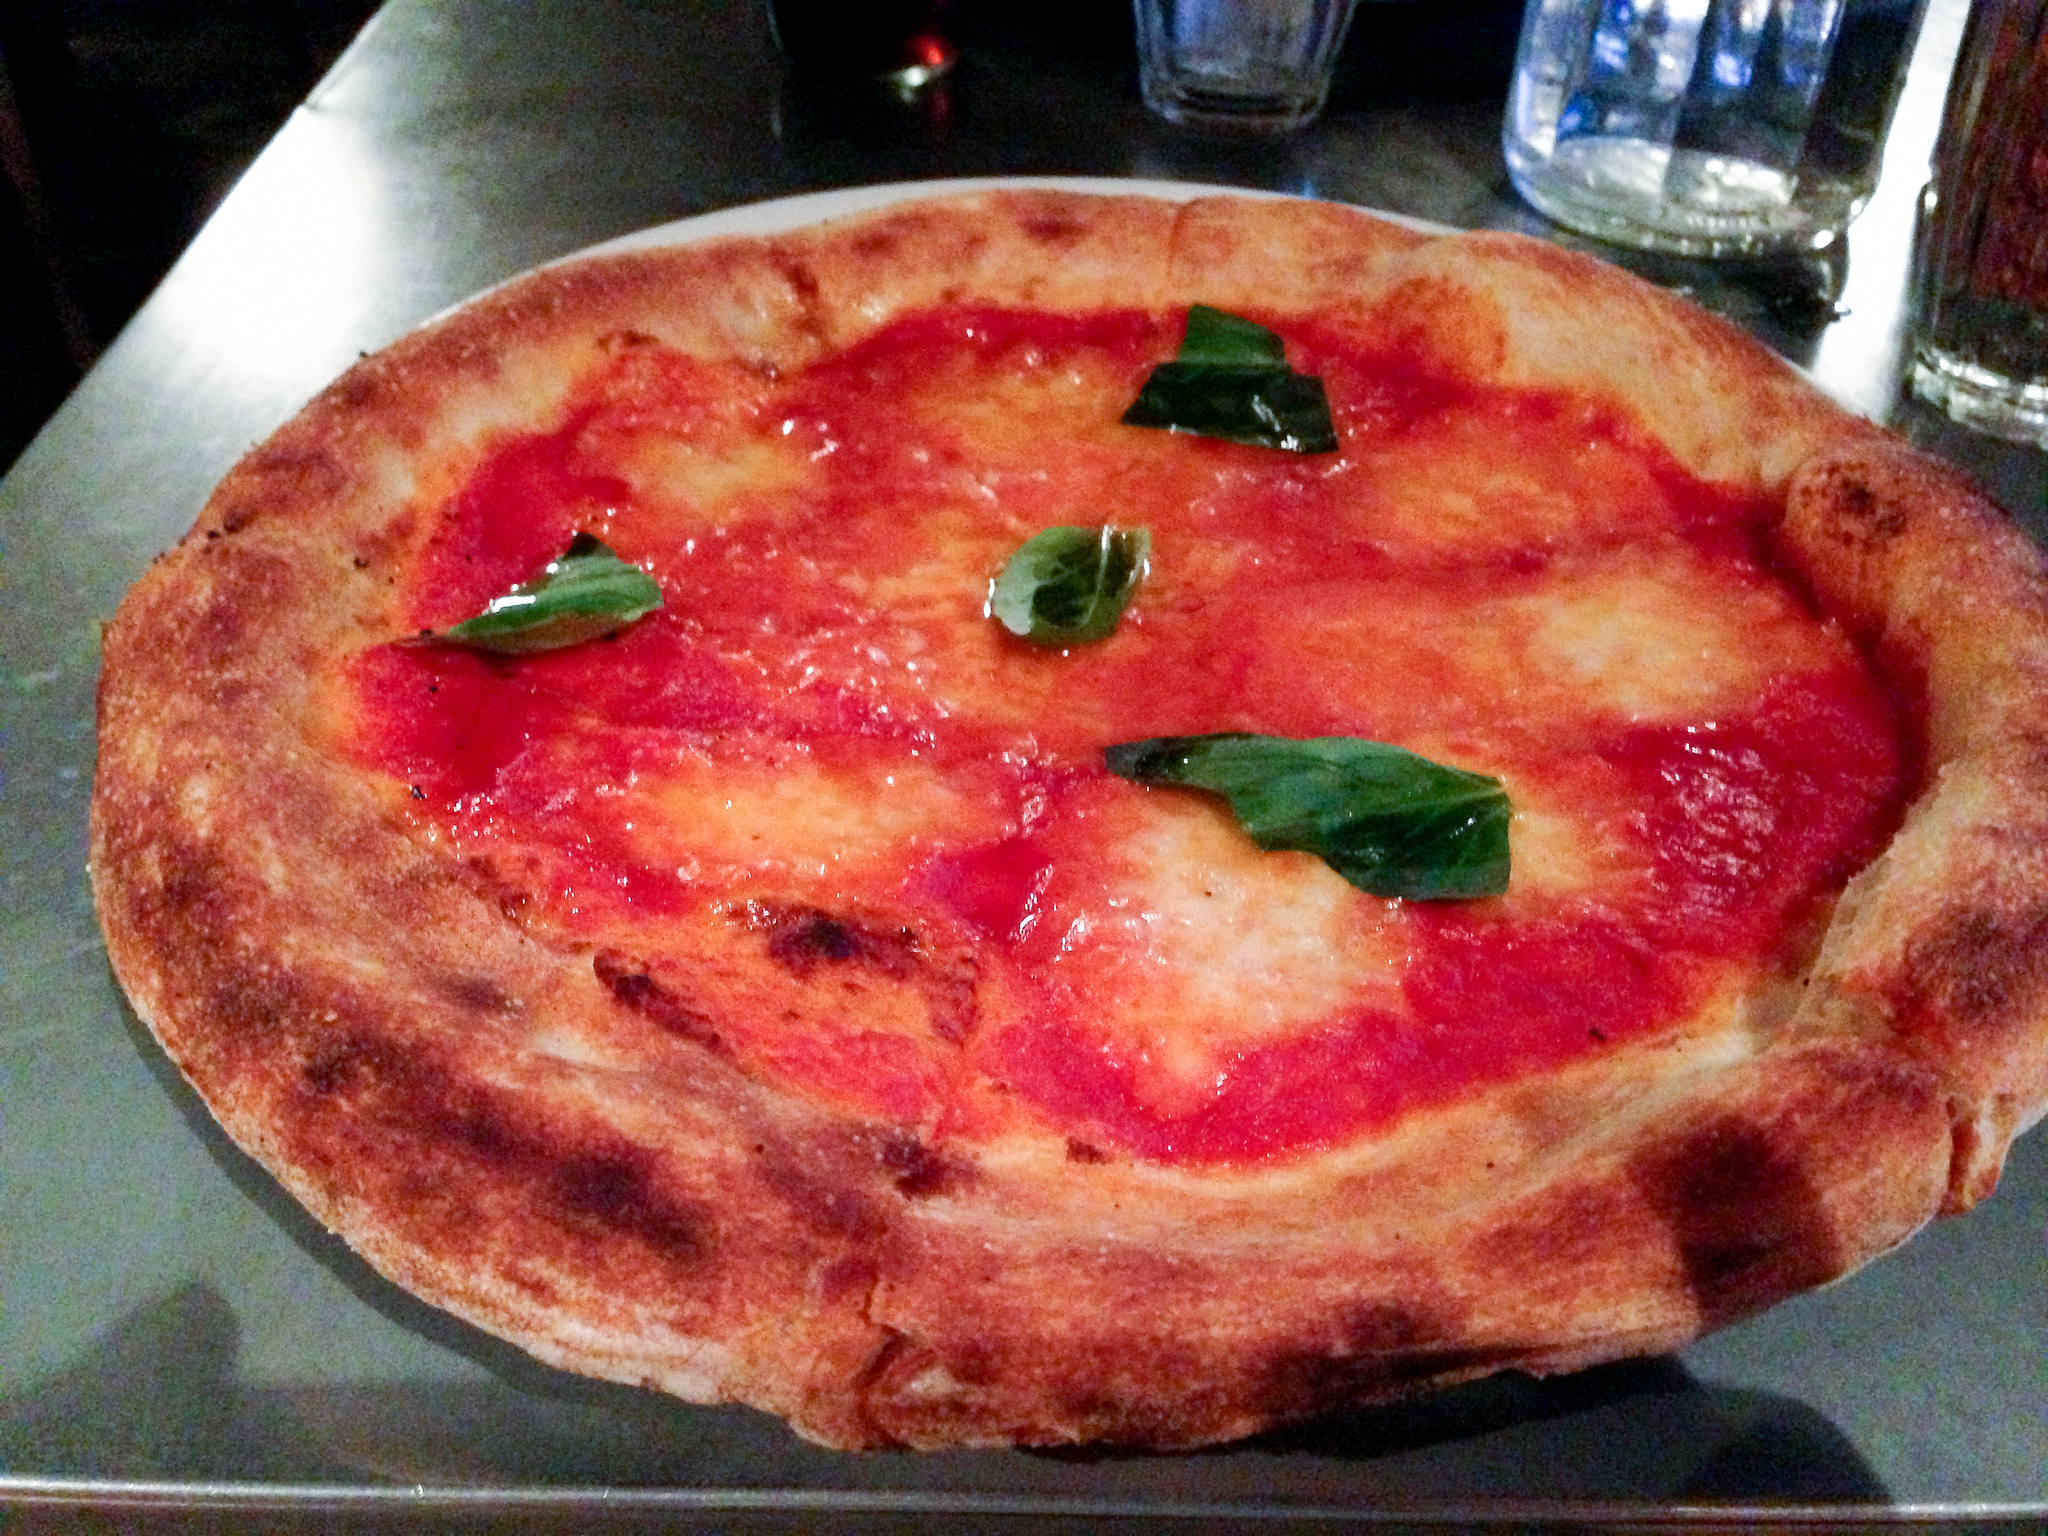 Margherita at Pizza East in London. Photo by alphacityguides.